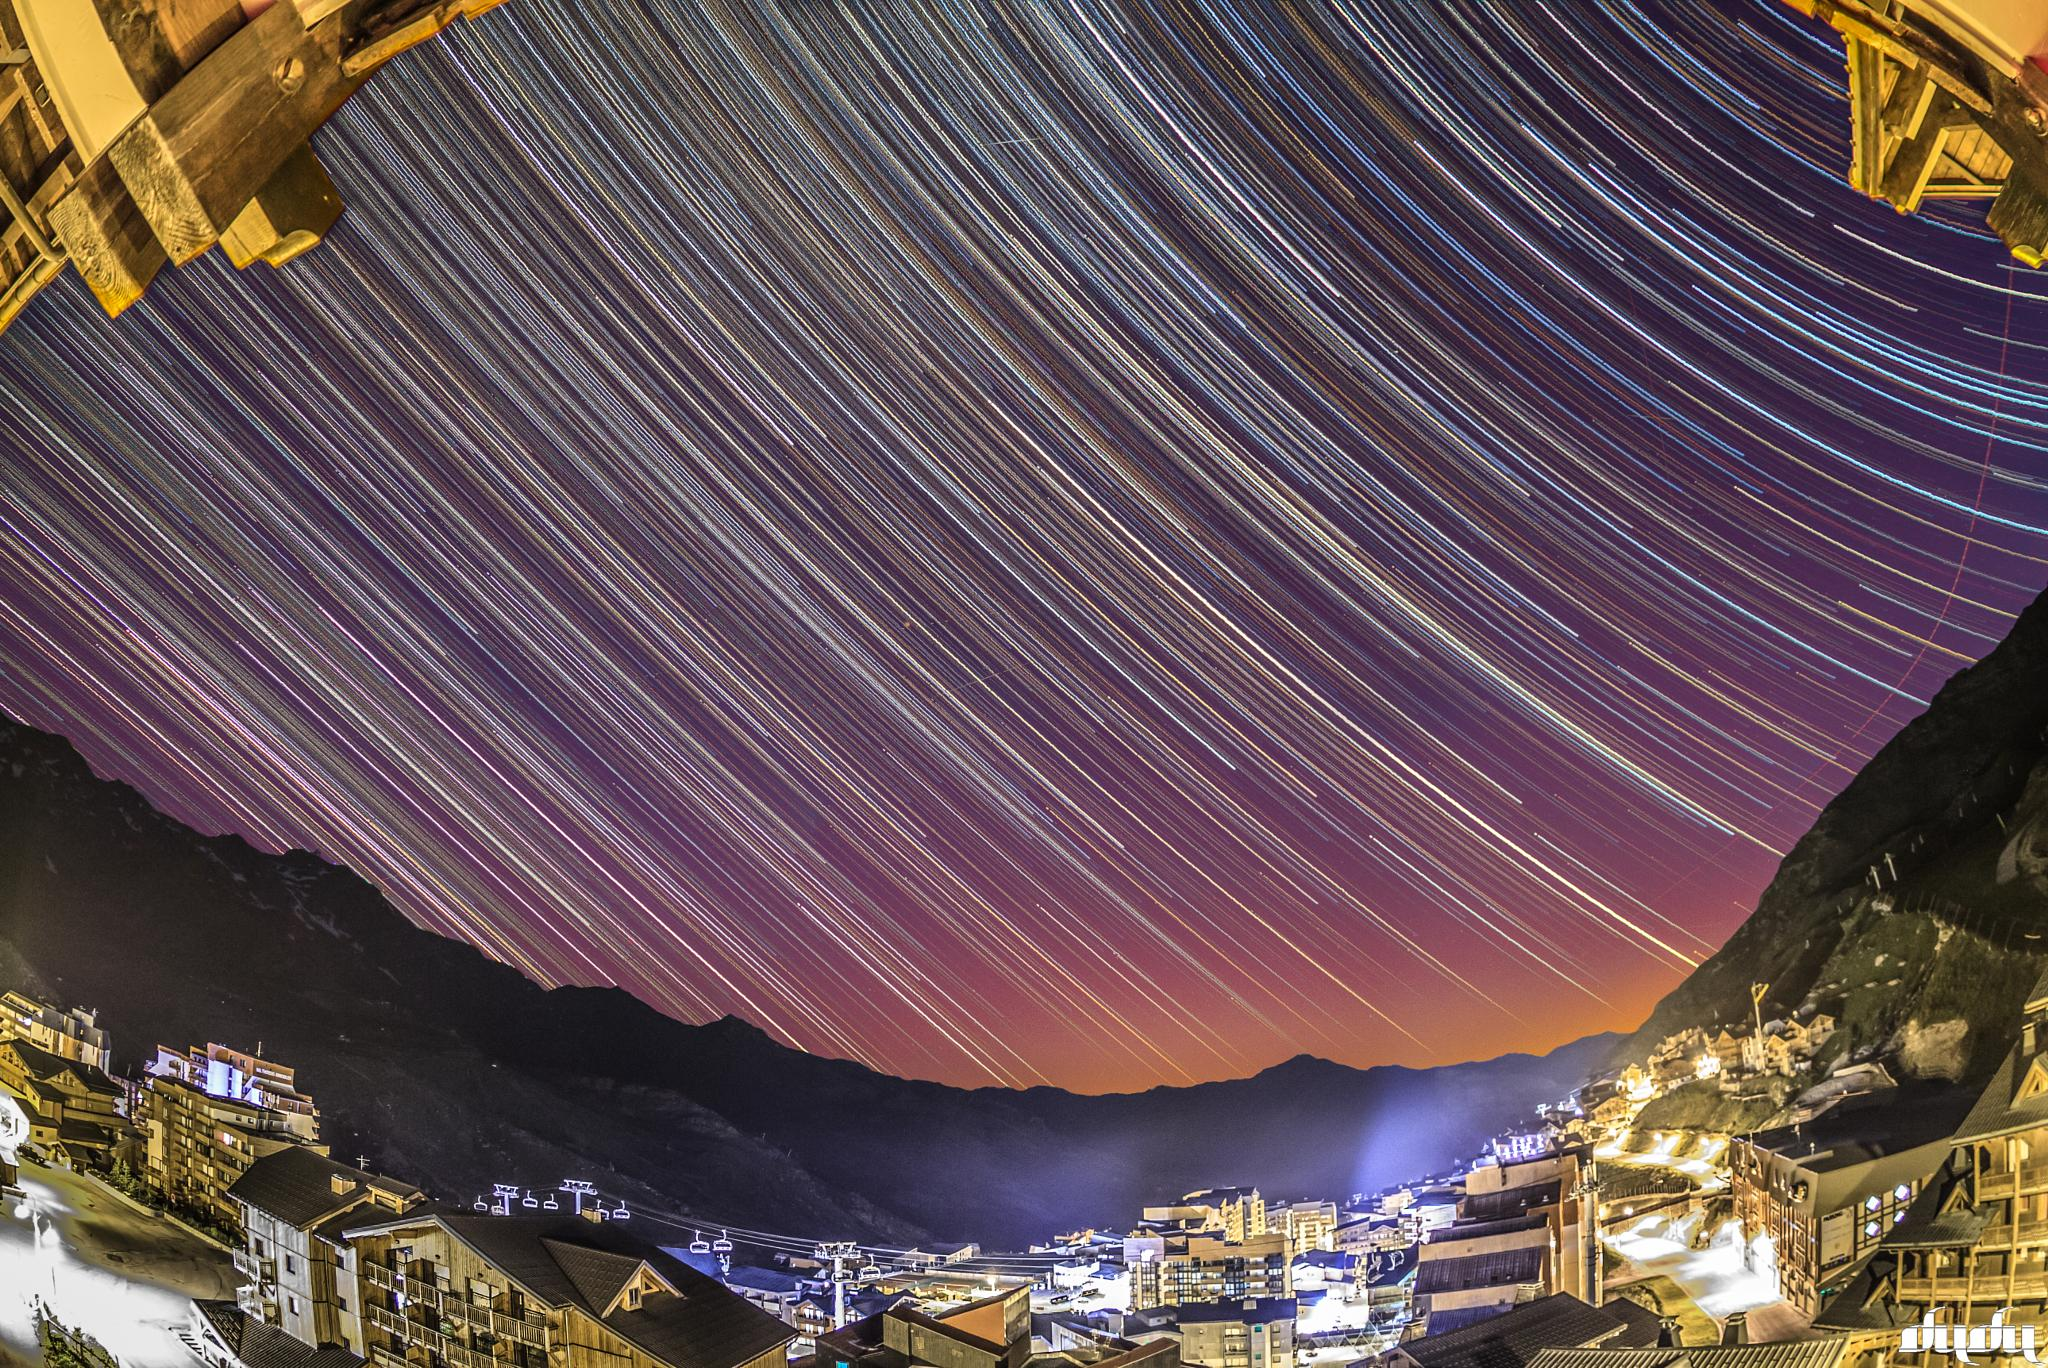 700 shots over Val thorens by DuDu2300